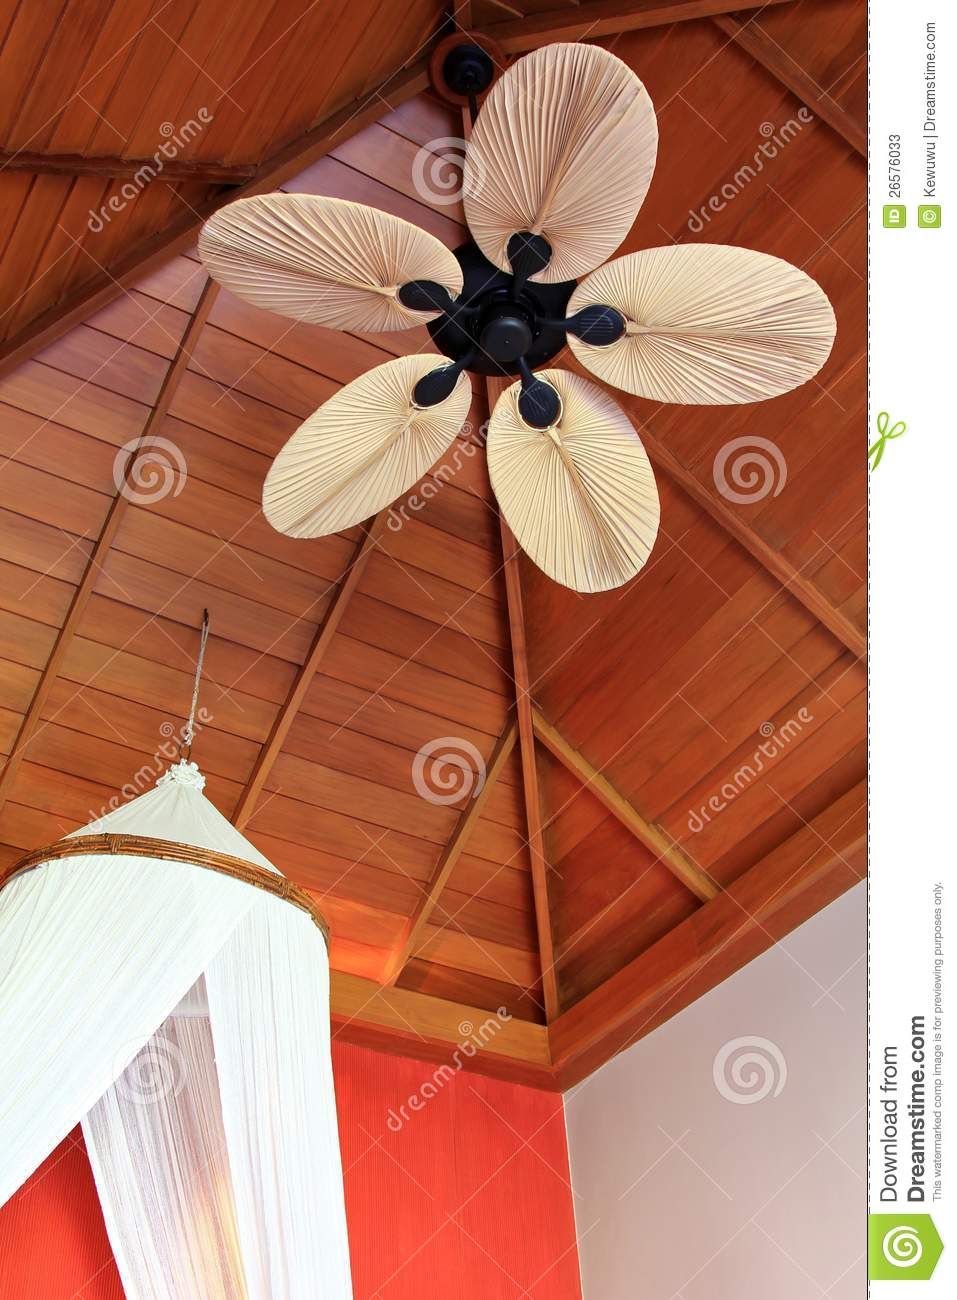 A Room With Palm Leaf Shaped Ceiling Fan Blade Stock Image Image Of Object Decor 26576033